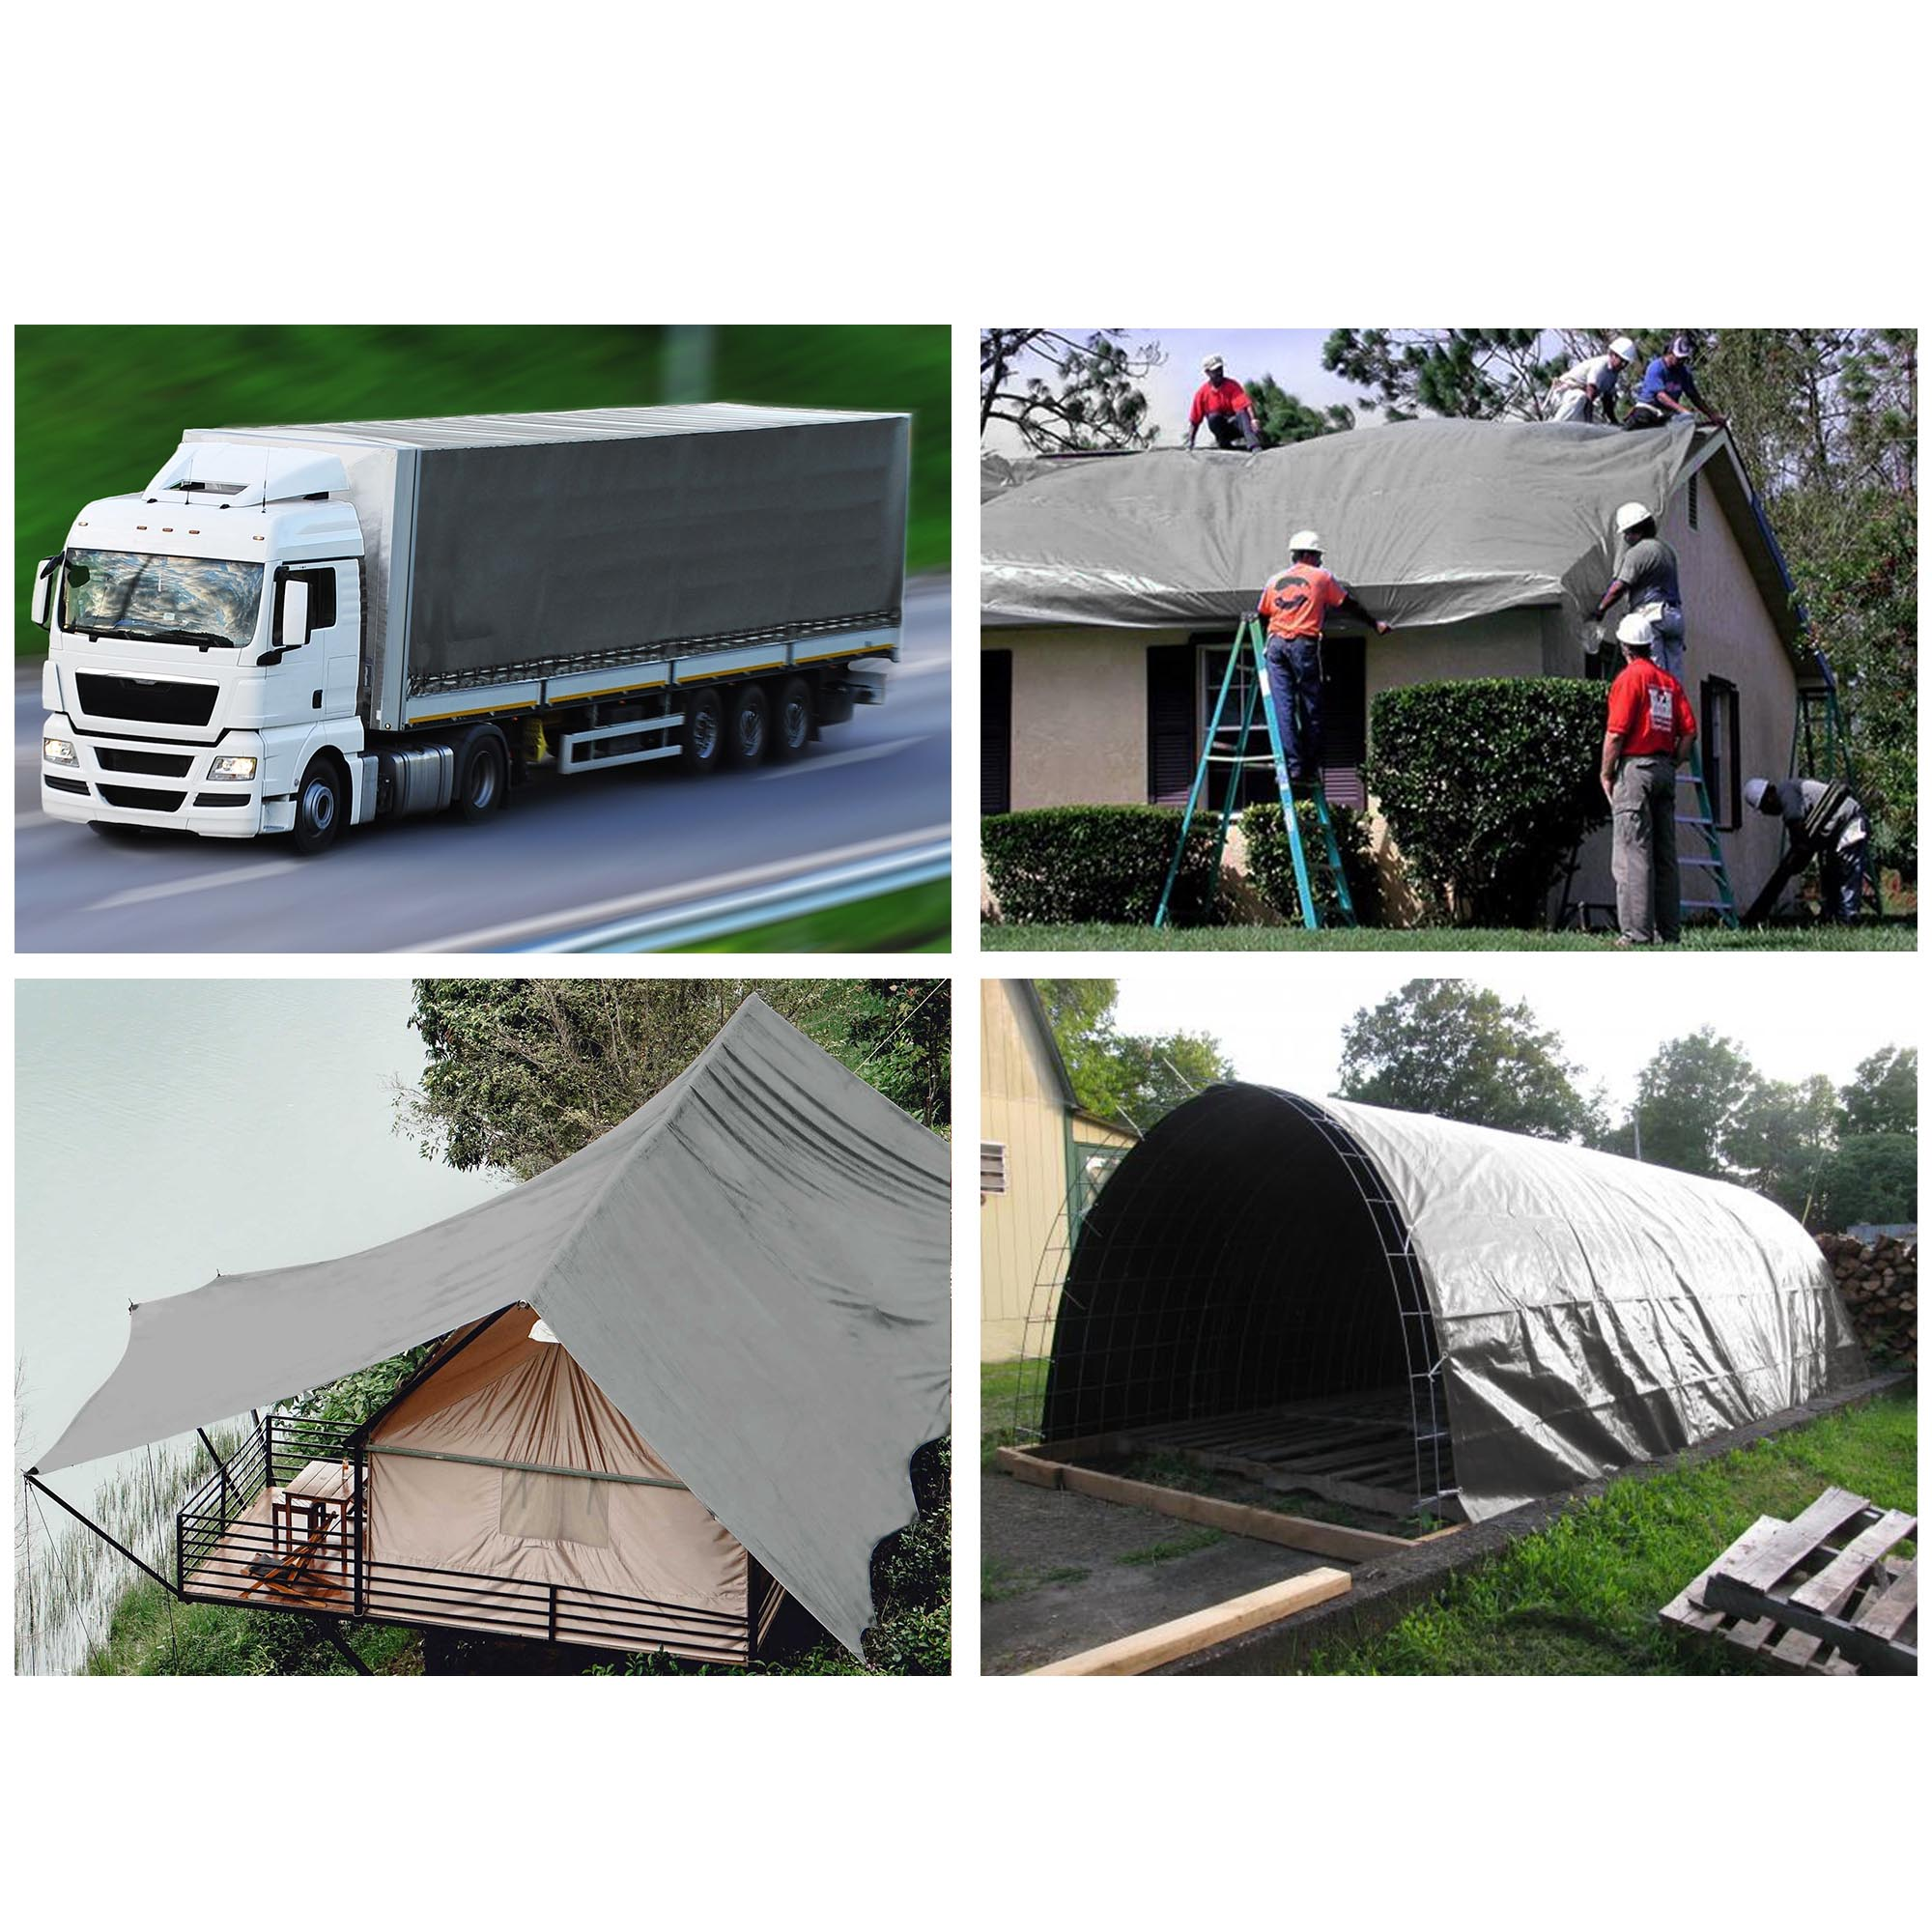 Tarp Cover White Heavy Duty 30X50 Thick Material RV Or Pool Cover Waterproof Boat 30X50 Heavy Duty Poly Tarp White Great for Tarpaulin Canopy Tent